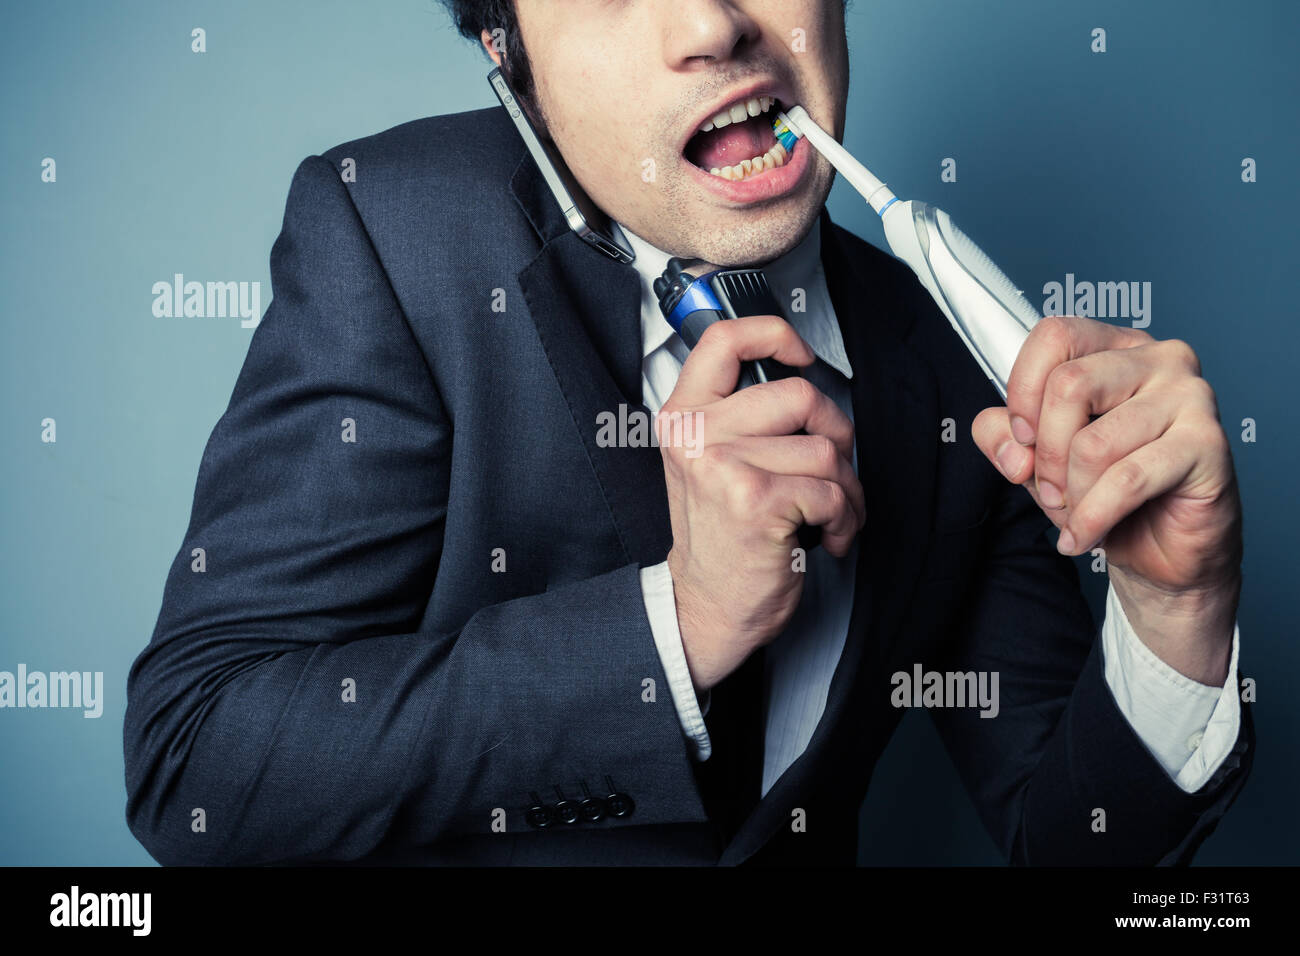 Stressed businessman is on the phone while brushing his teeth and shaving to save time - Stock Image